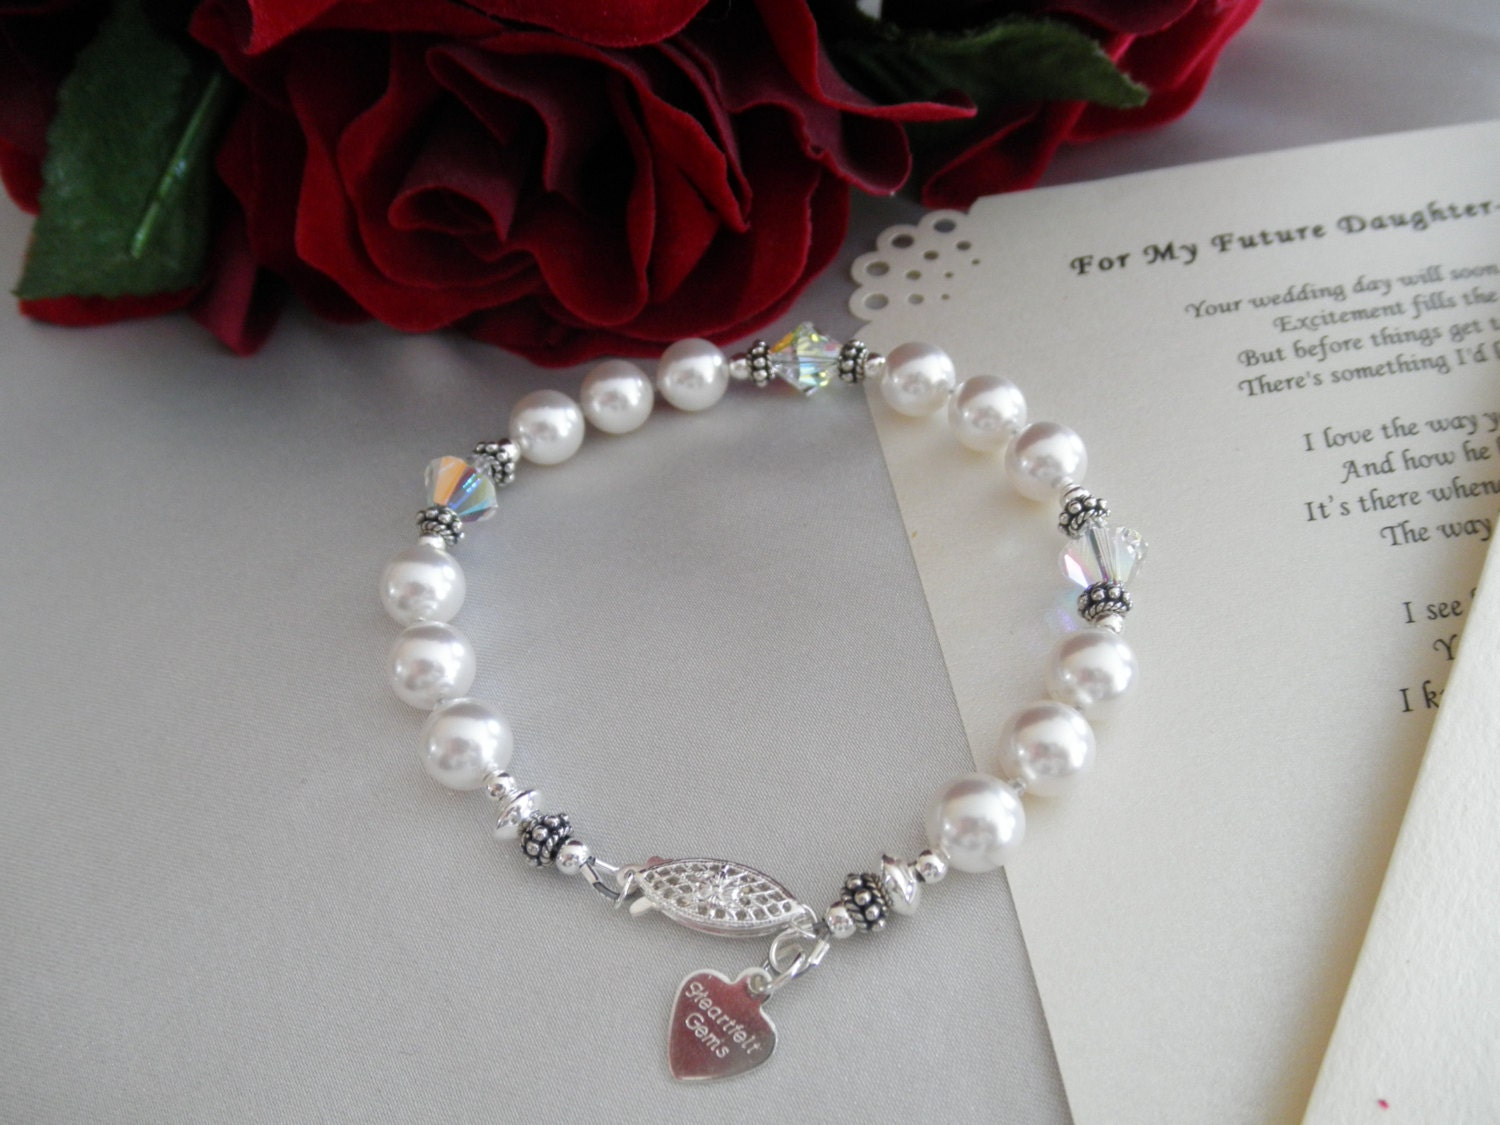 Daughter In Law Personalized Poem: Wedding Bracelet And Personalized Poem Or Note For Your Future